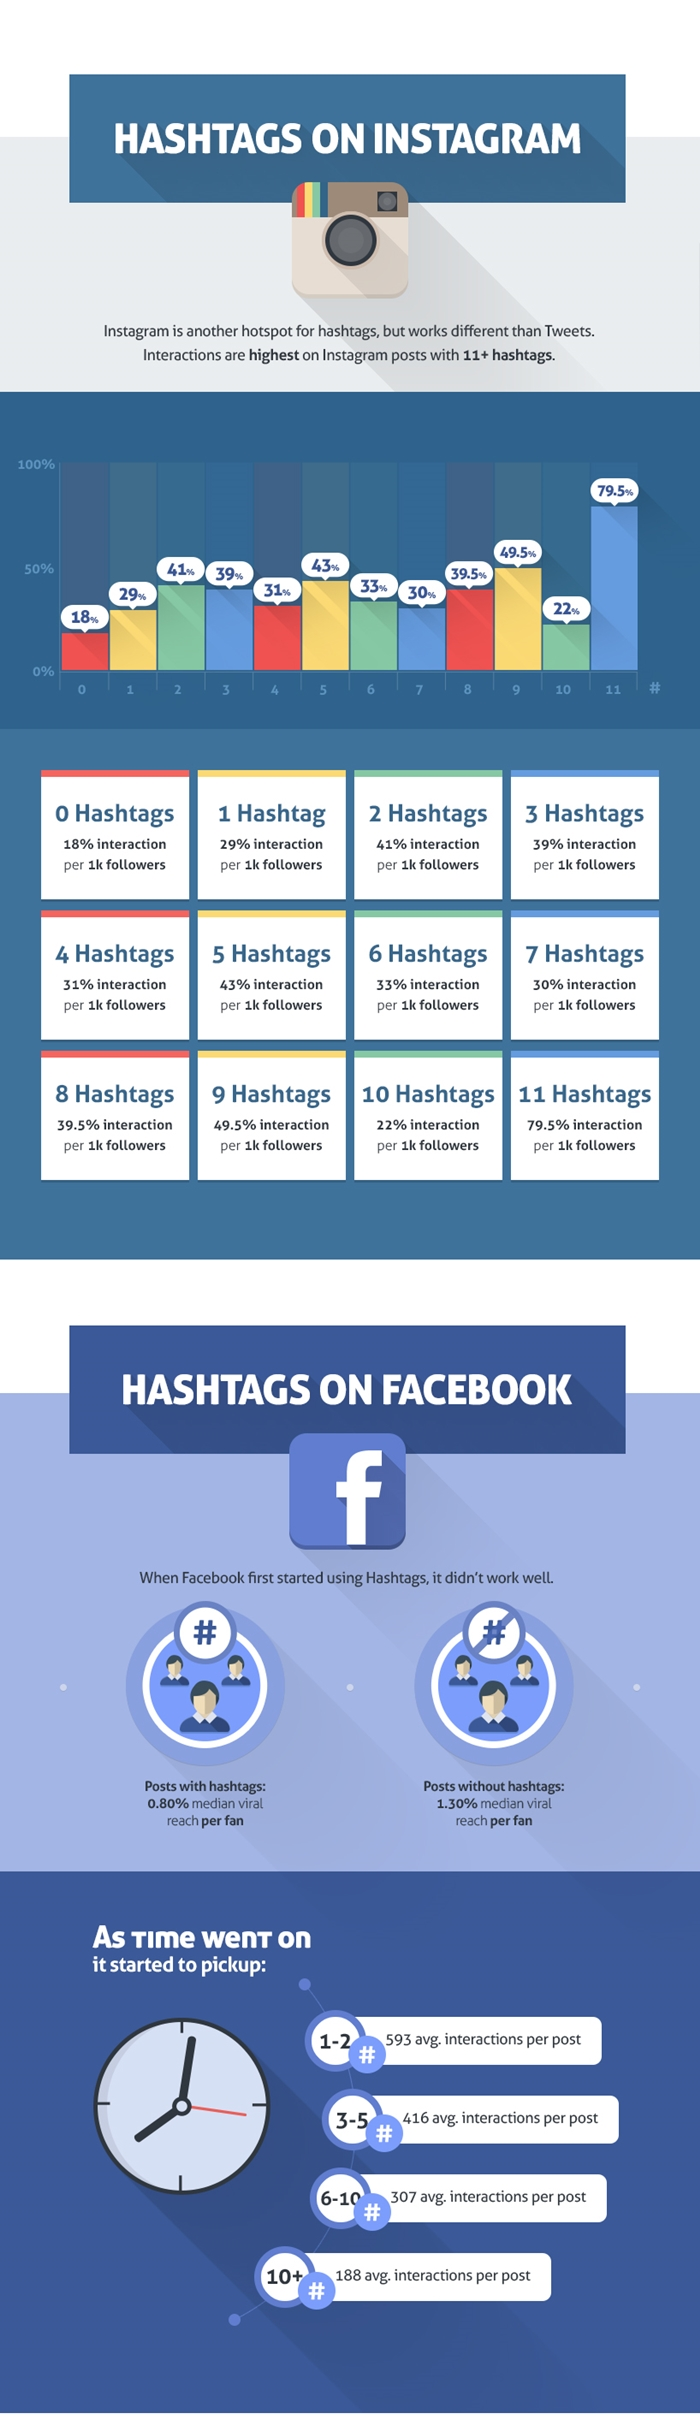 Ultimate-Guide-to-HashTags-How-Many-Which-Ones-and-Where-002